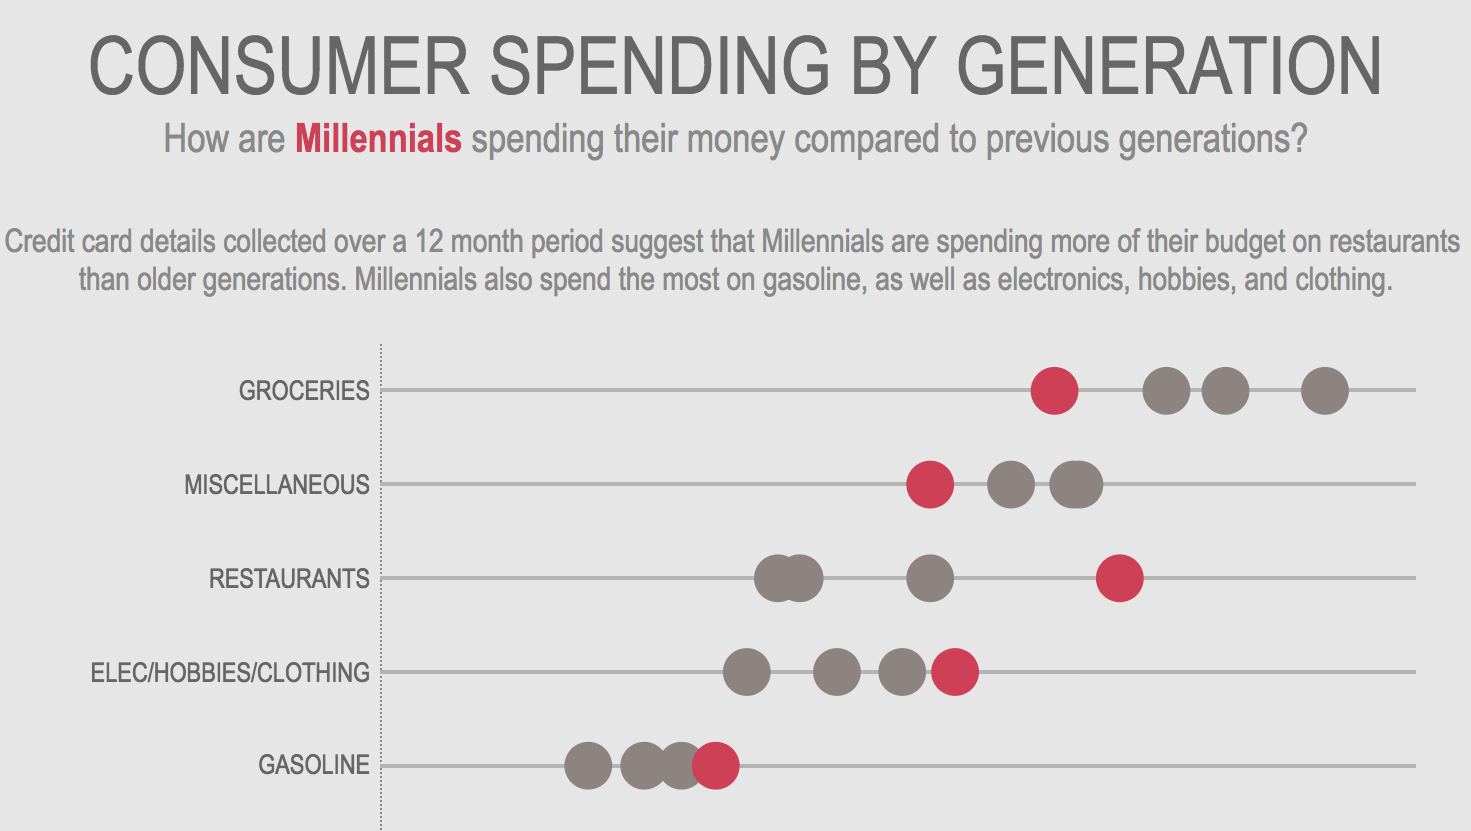 Spending of millennials compared to other generations